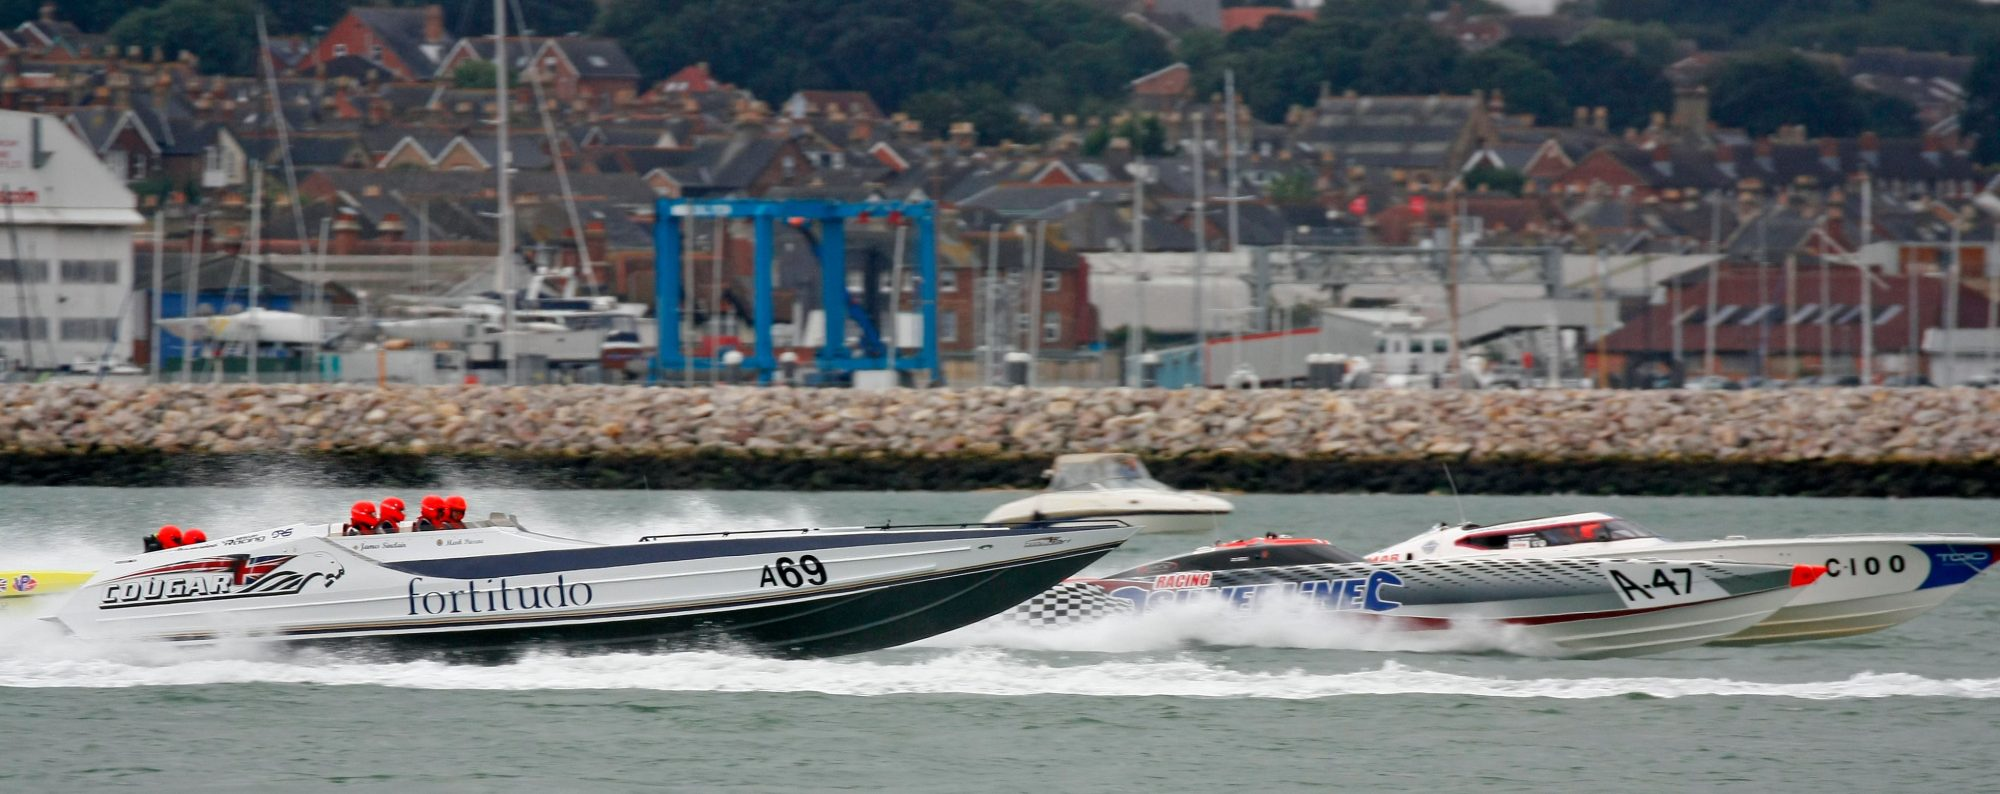 Cowes Torquay Cowes & Cowes Poole Cowes Offshore Powerboat Races